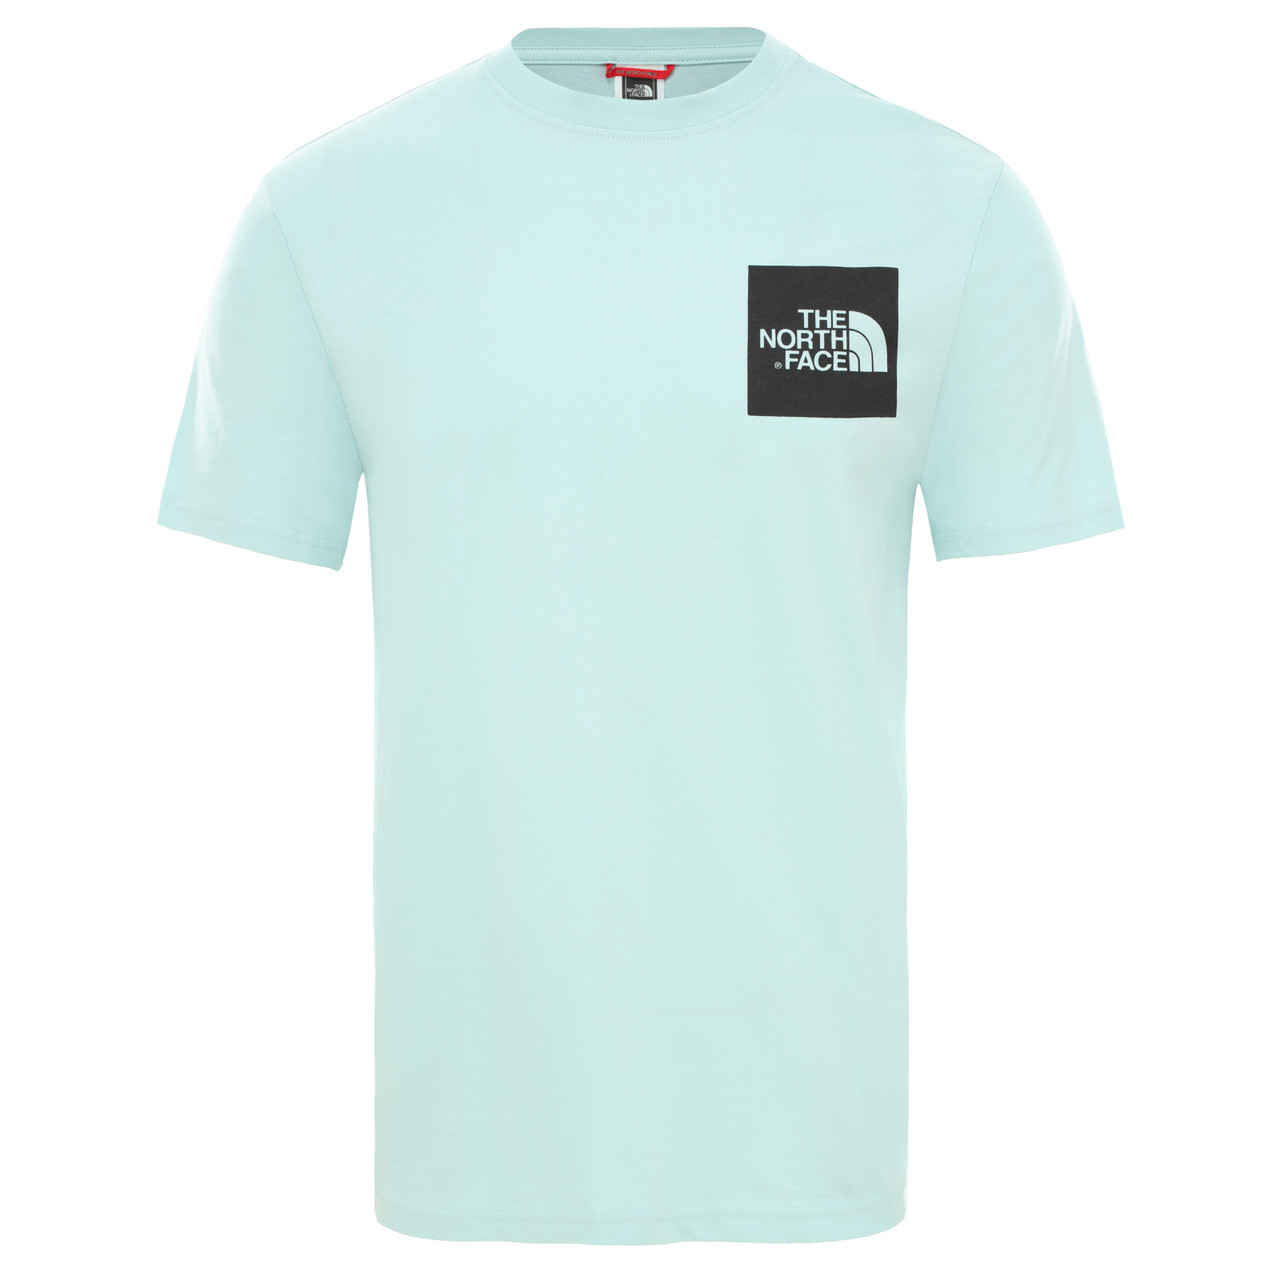 The North Face Fine Tee Men's S/S